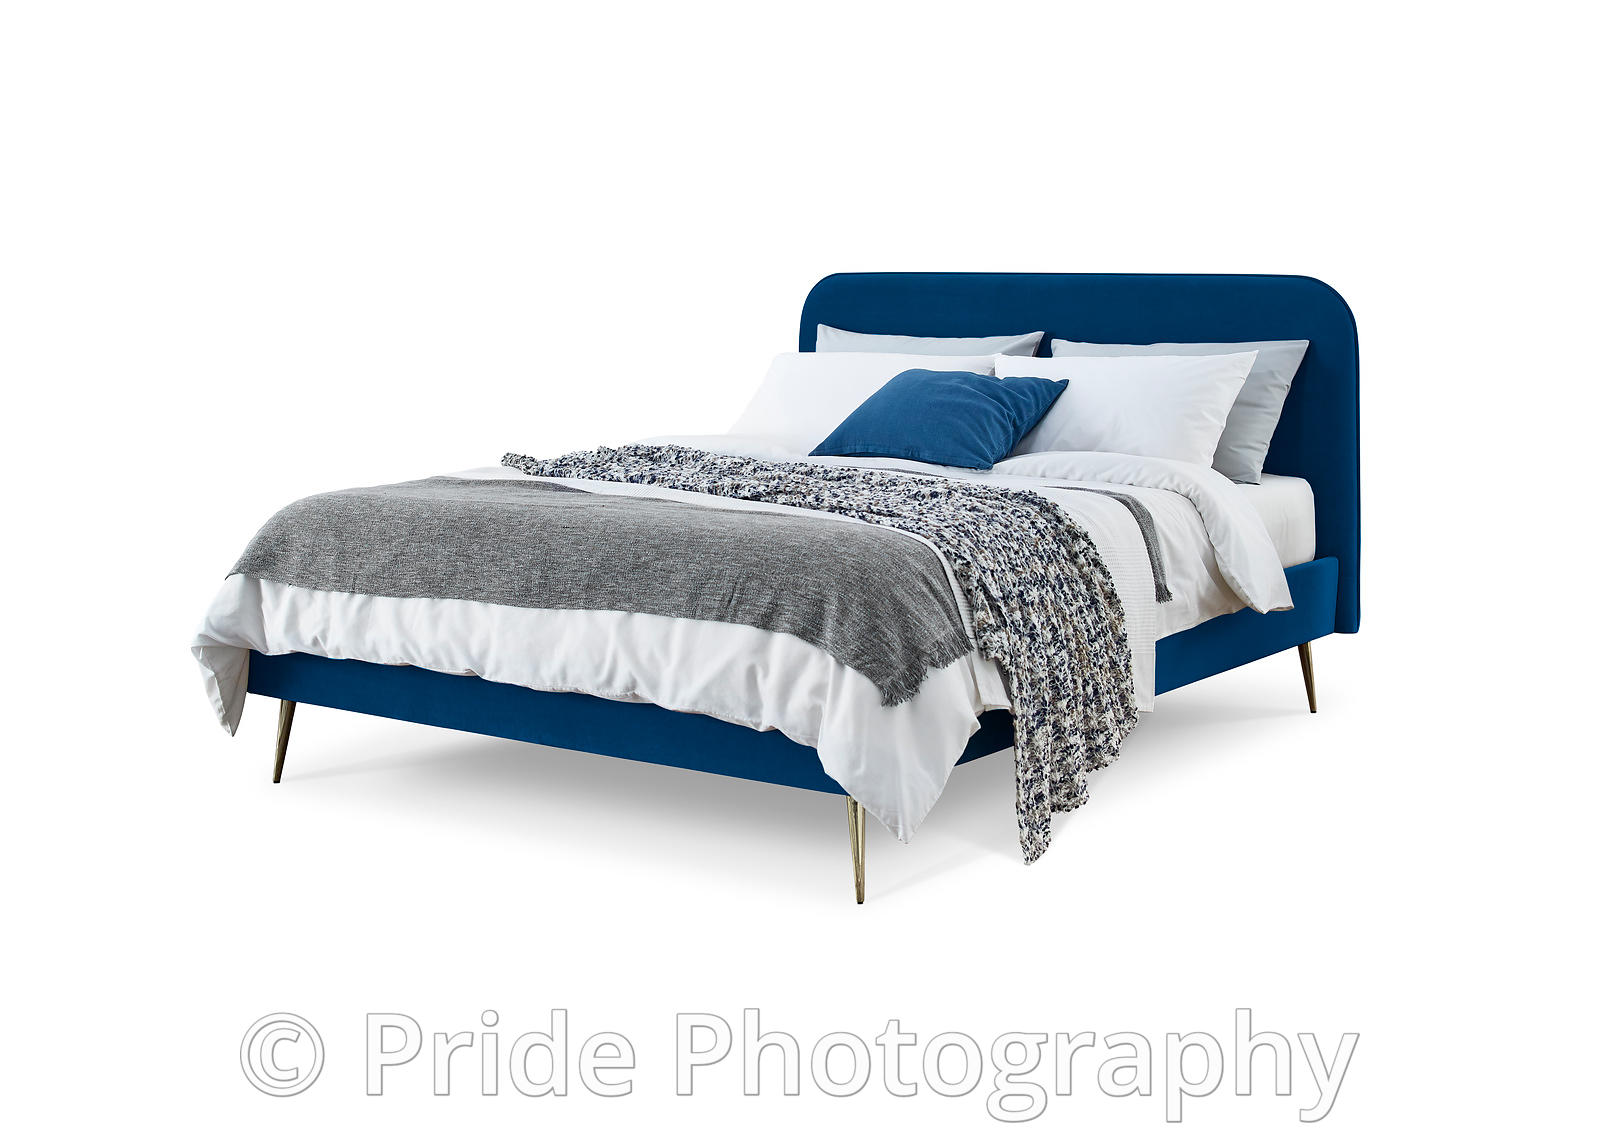 Arlana_Blue_bed_main_original